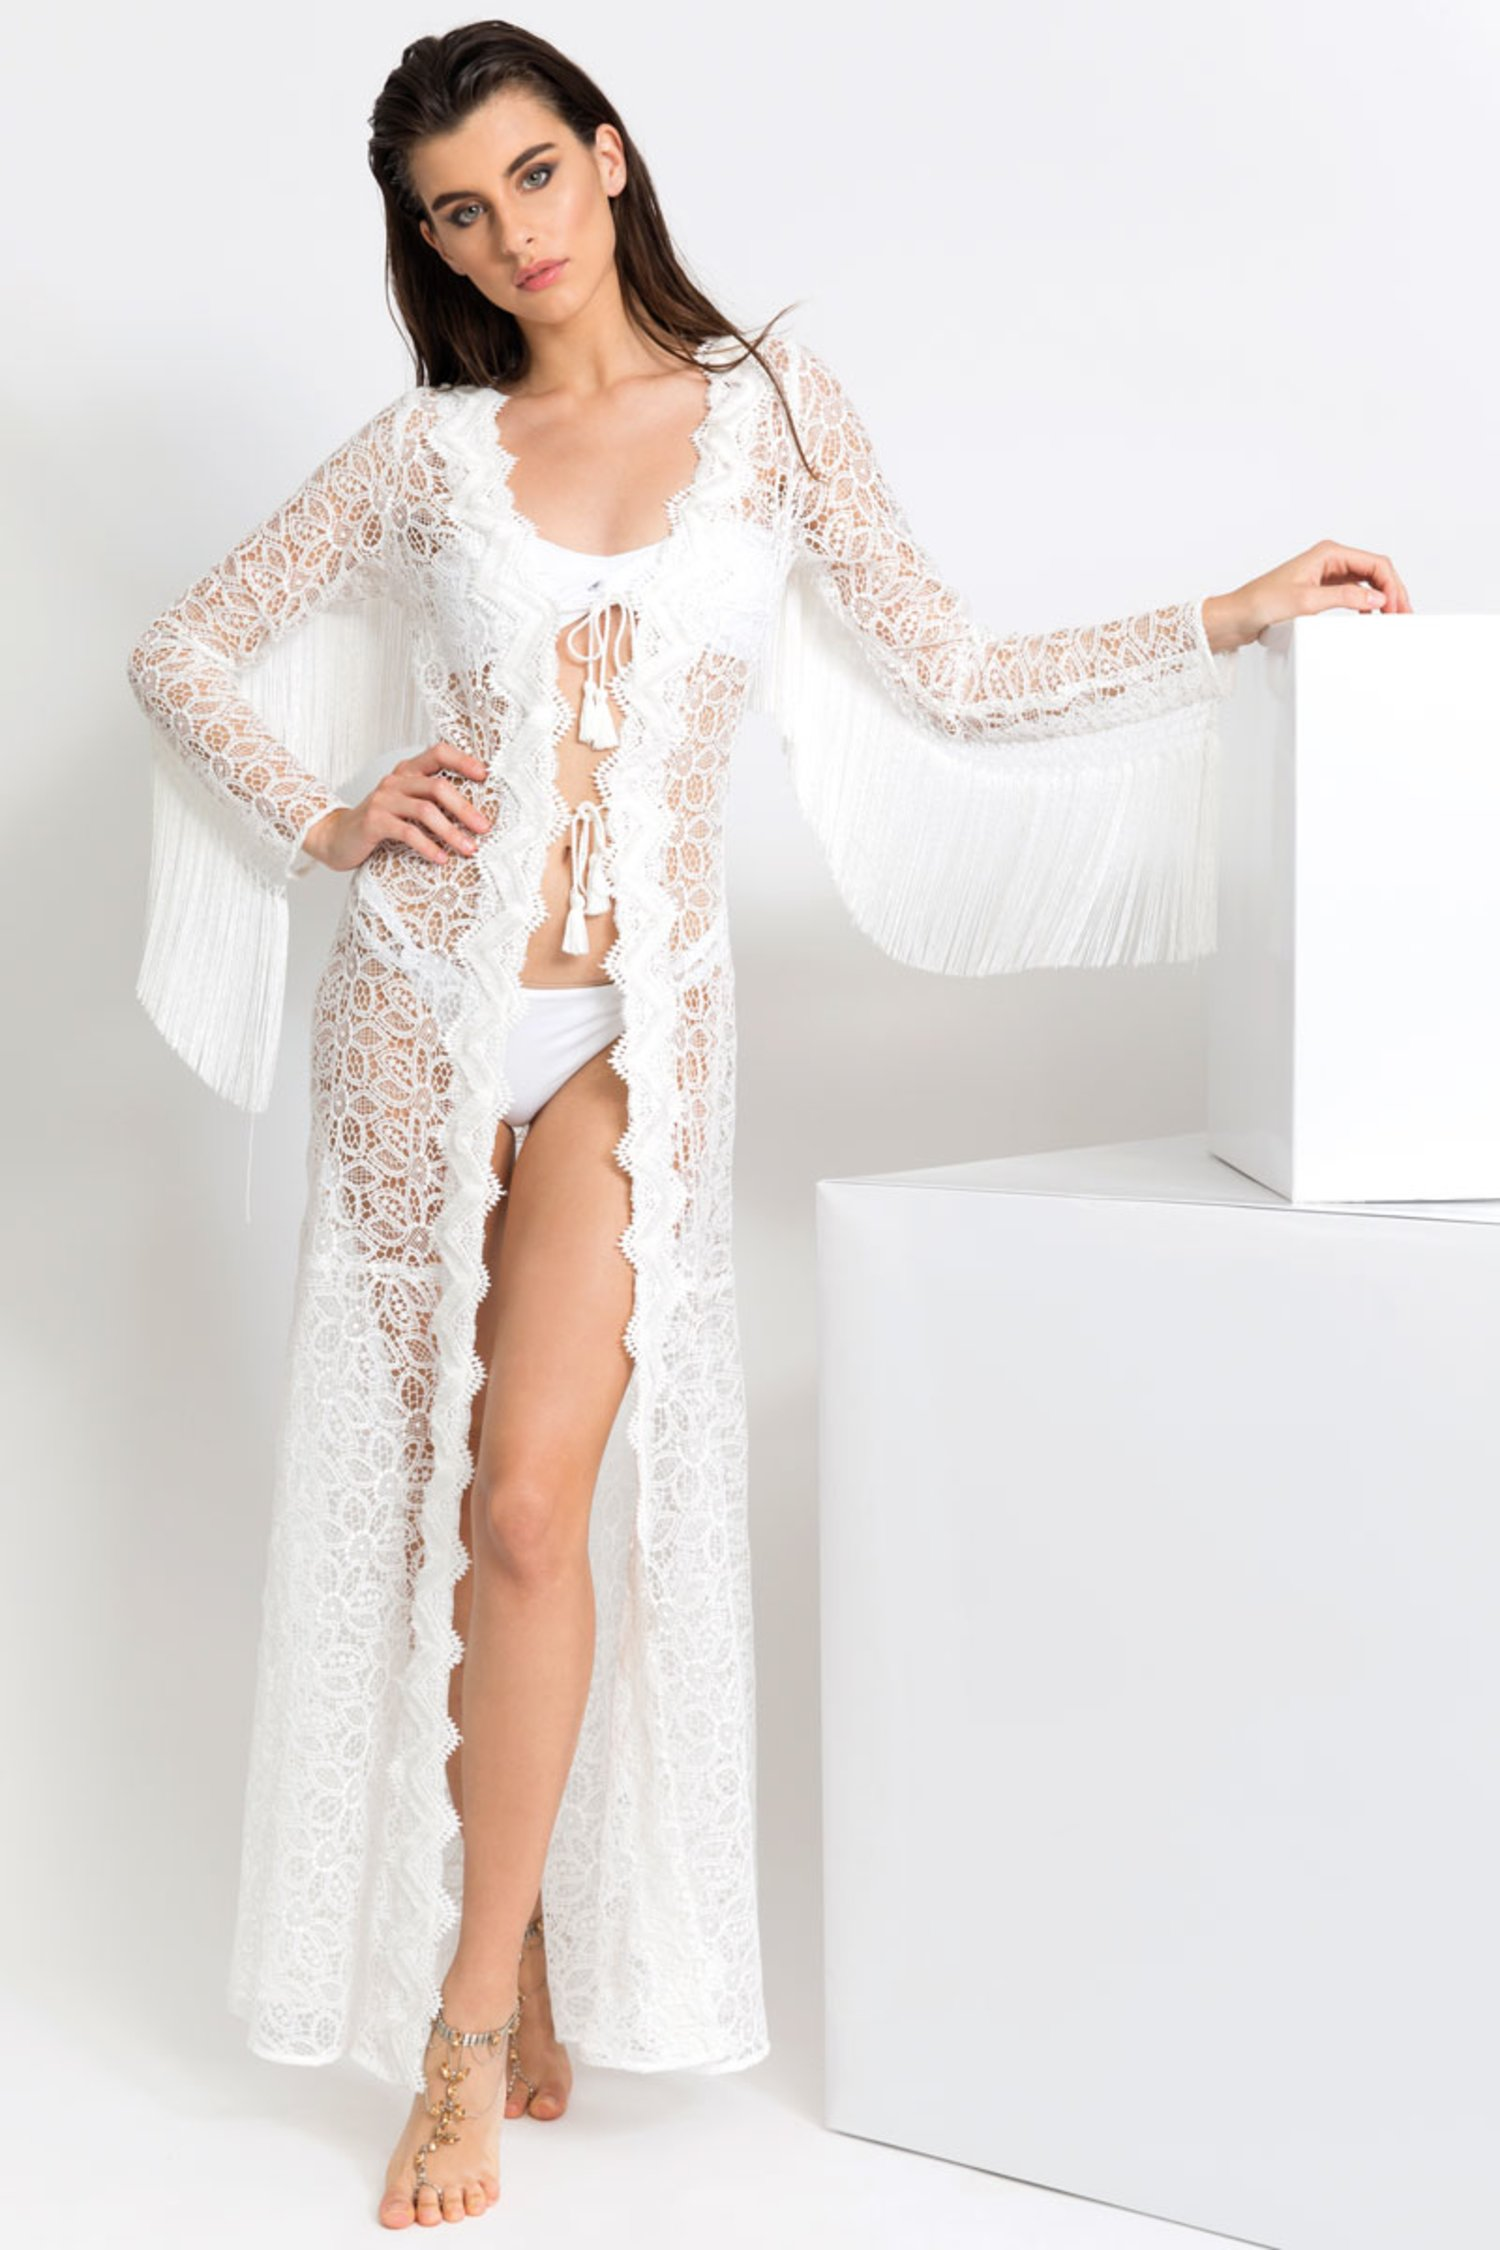 MACRAME' LACE LONG ROBE WITH TRIMMING - Pizzo Macrame' Bianco